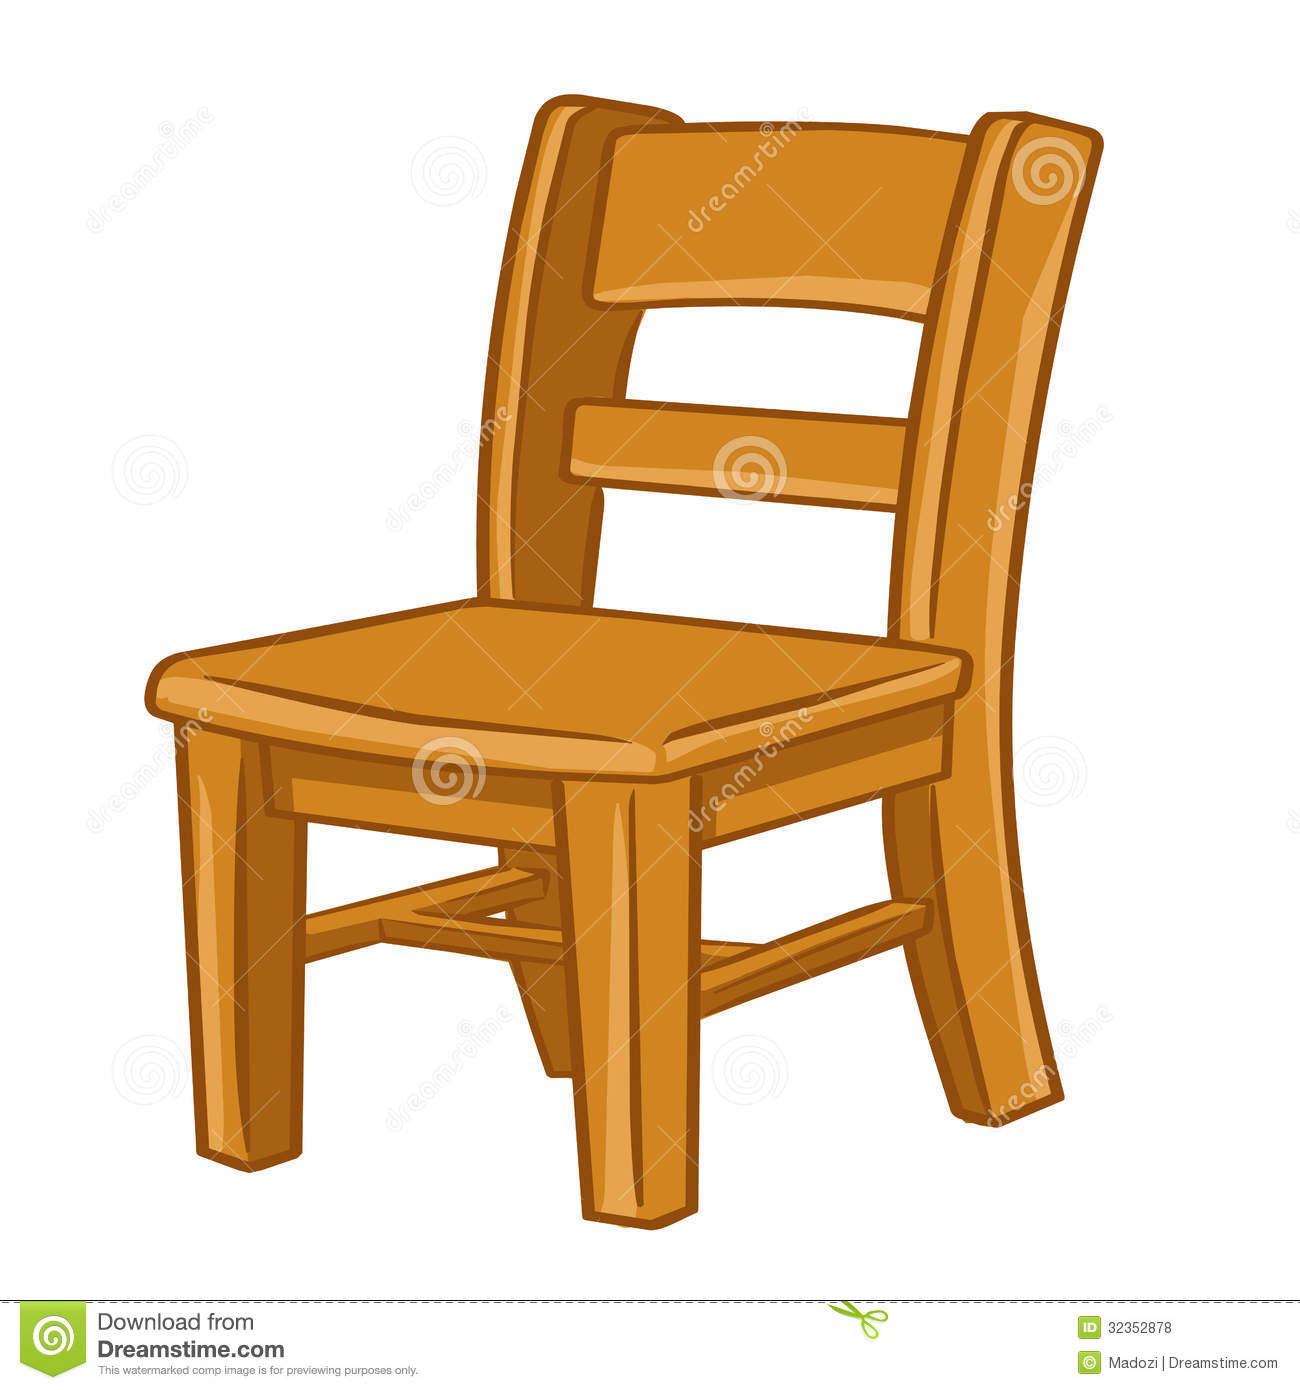 chair clip art free clipart panda free clipart images rh clipartpanda com clipart chair pictures clipart chair massage